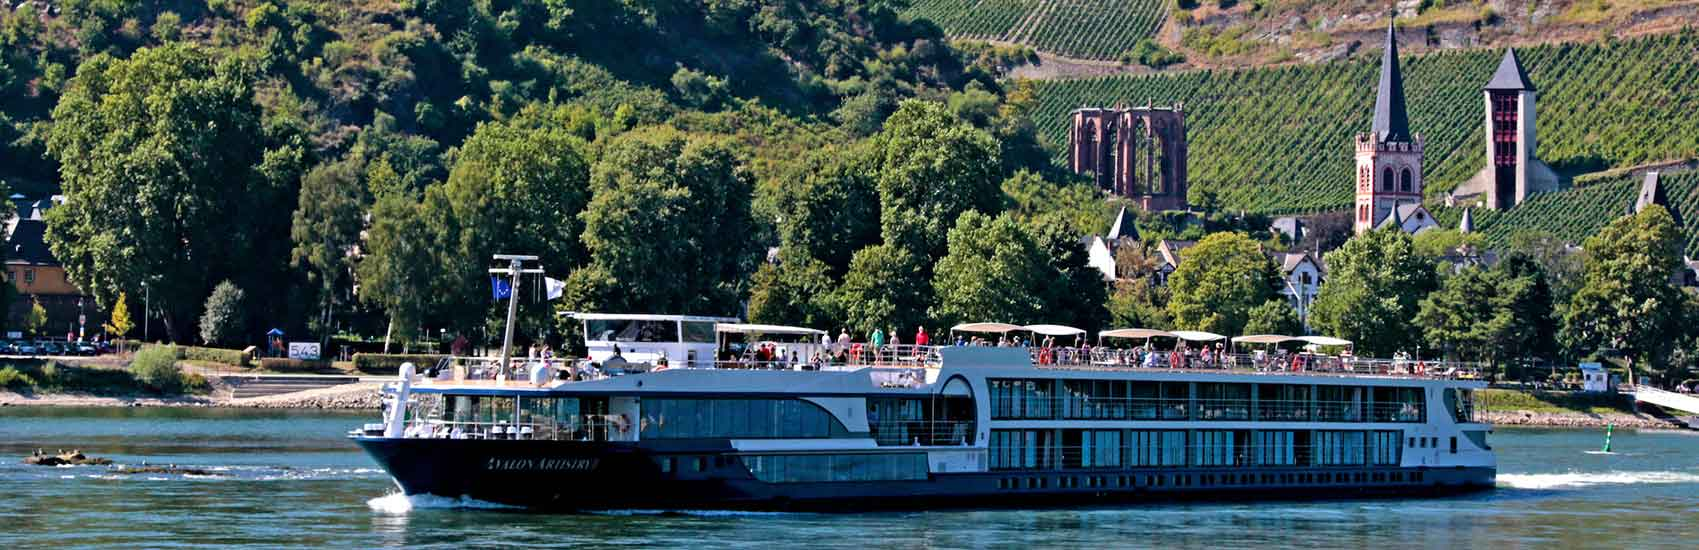 Exclusive Offer With AmaWaterways 2